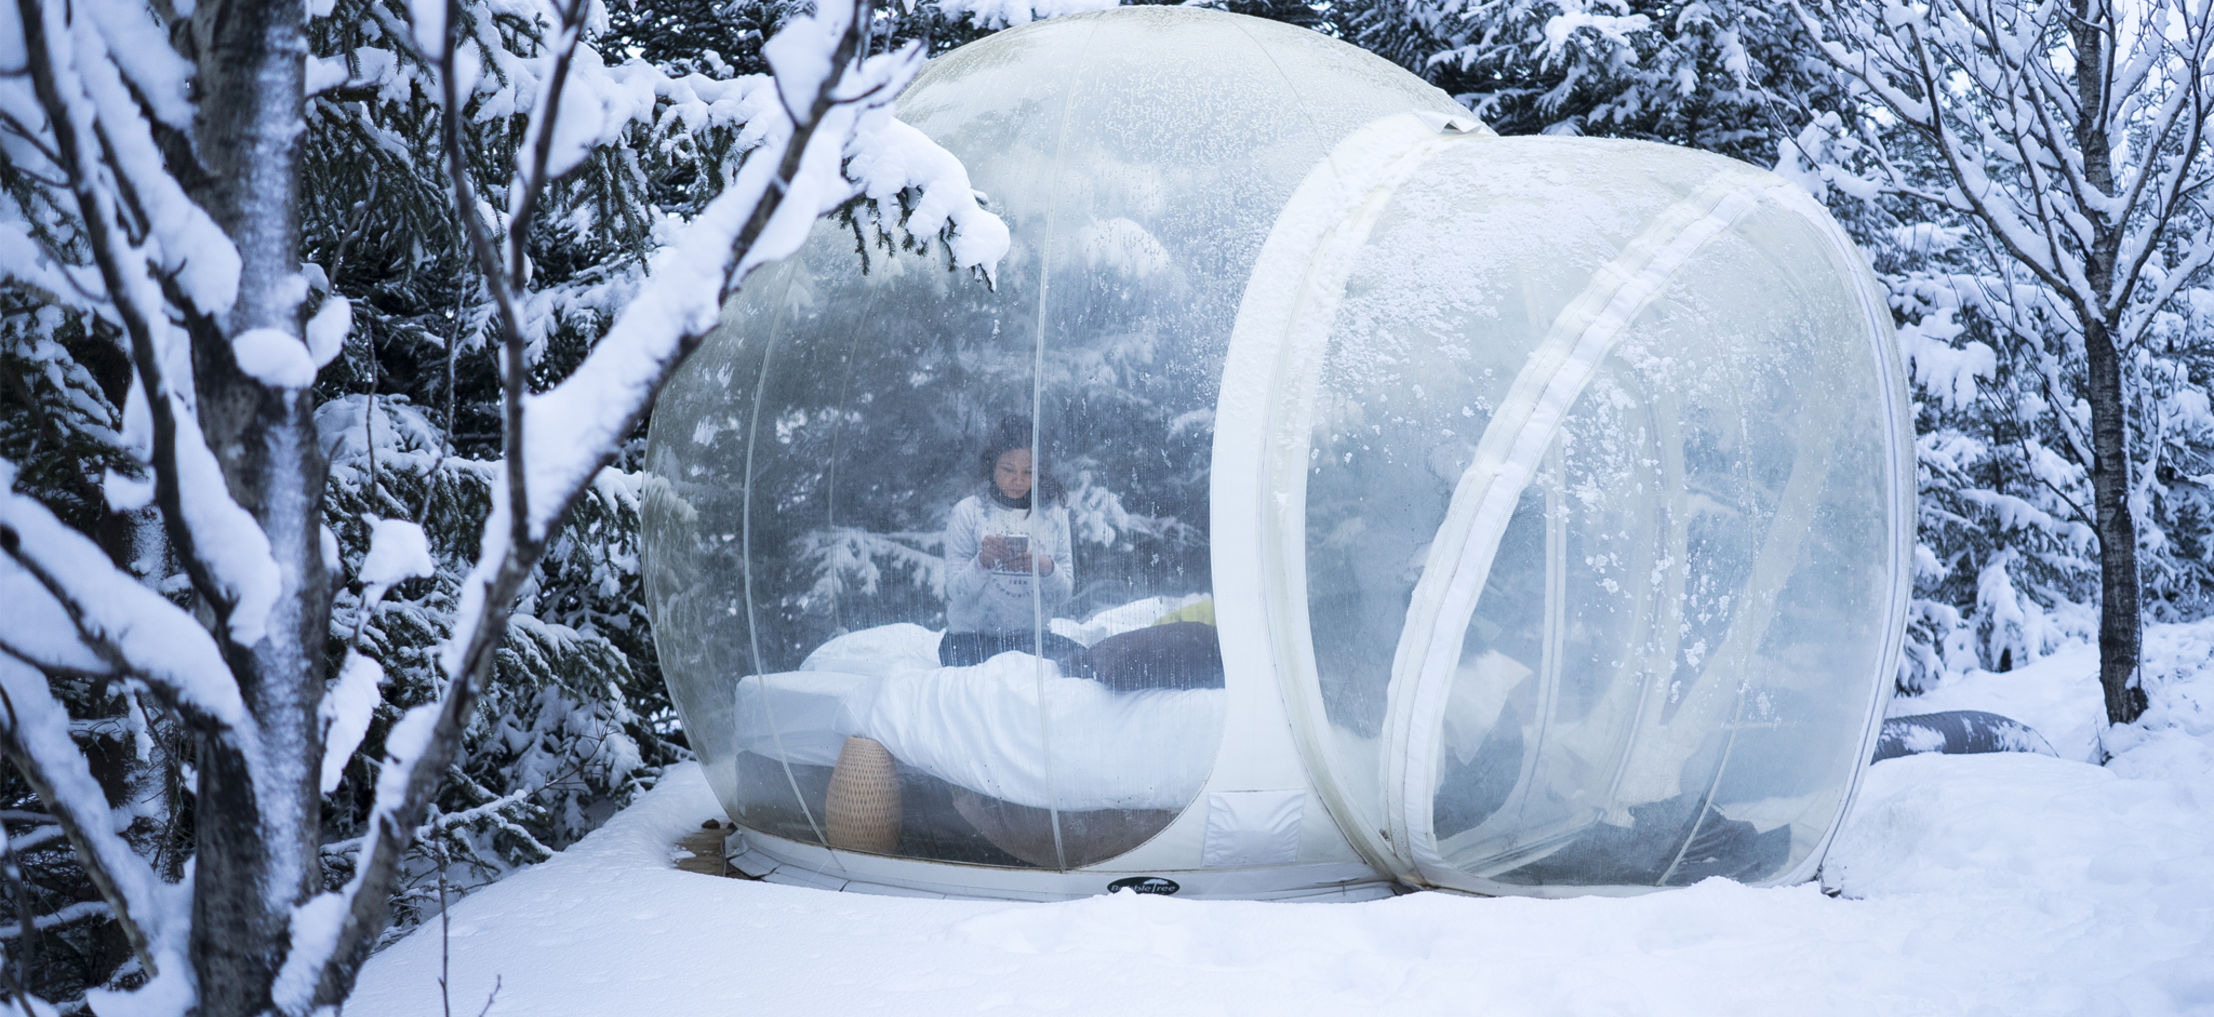 Fall Asleep In Iceland' 'buubble' Hotel Wheretraveler